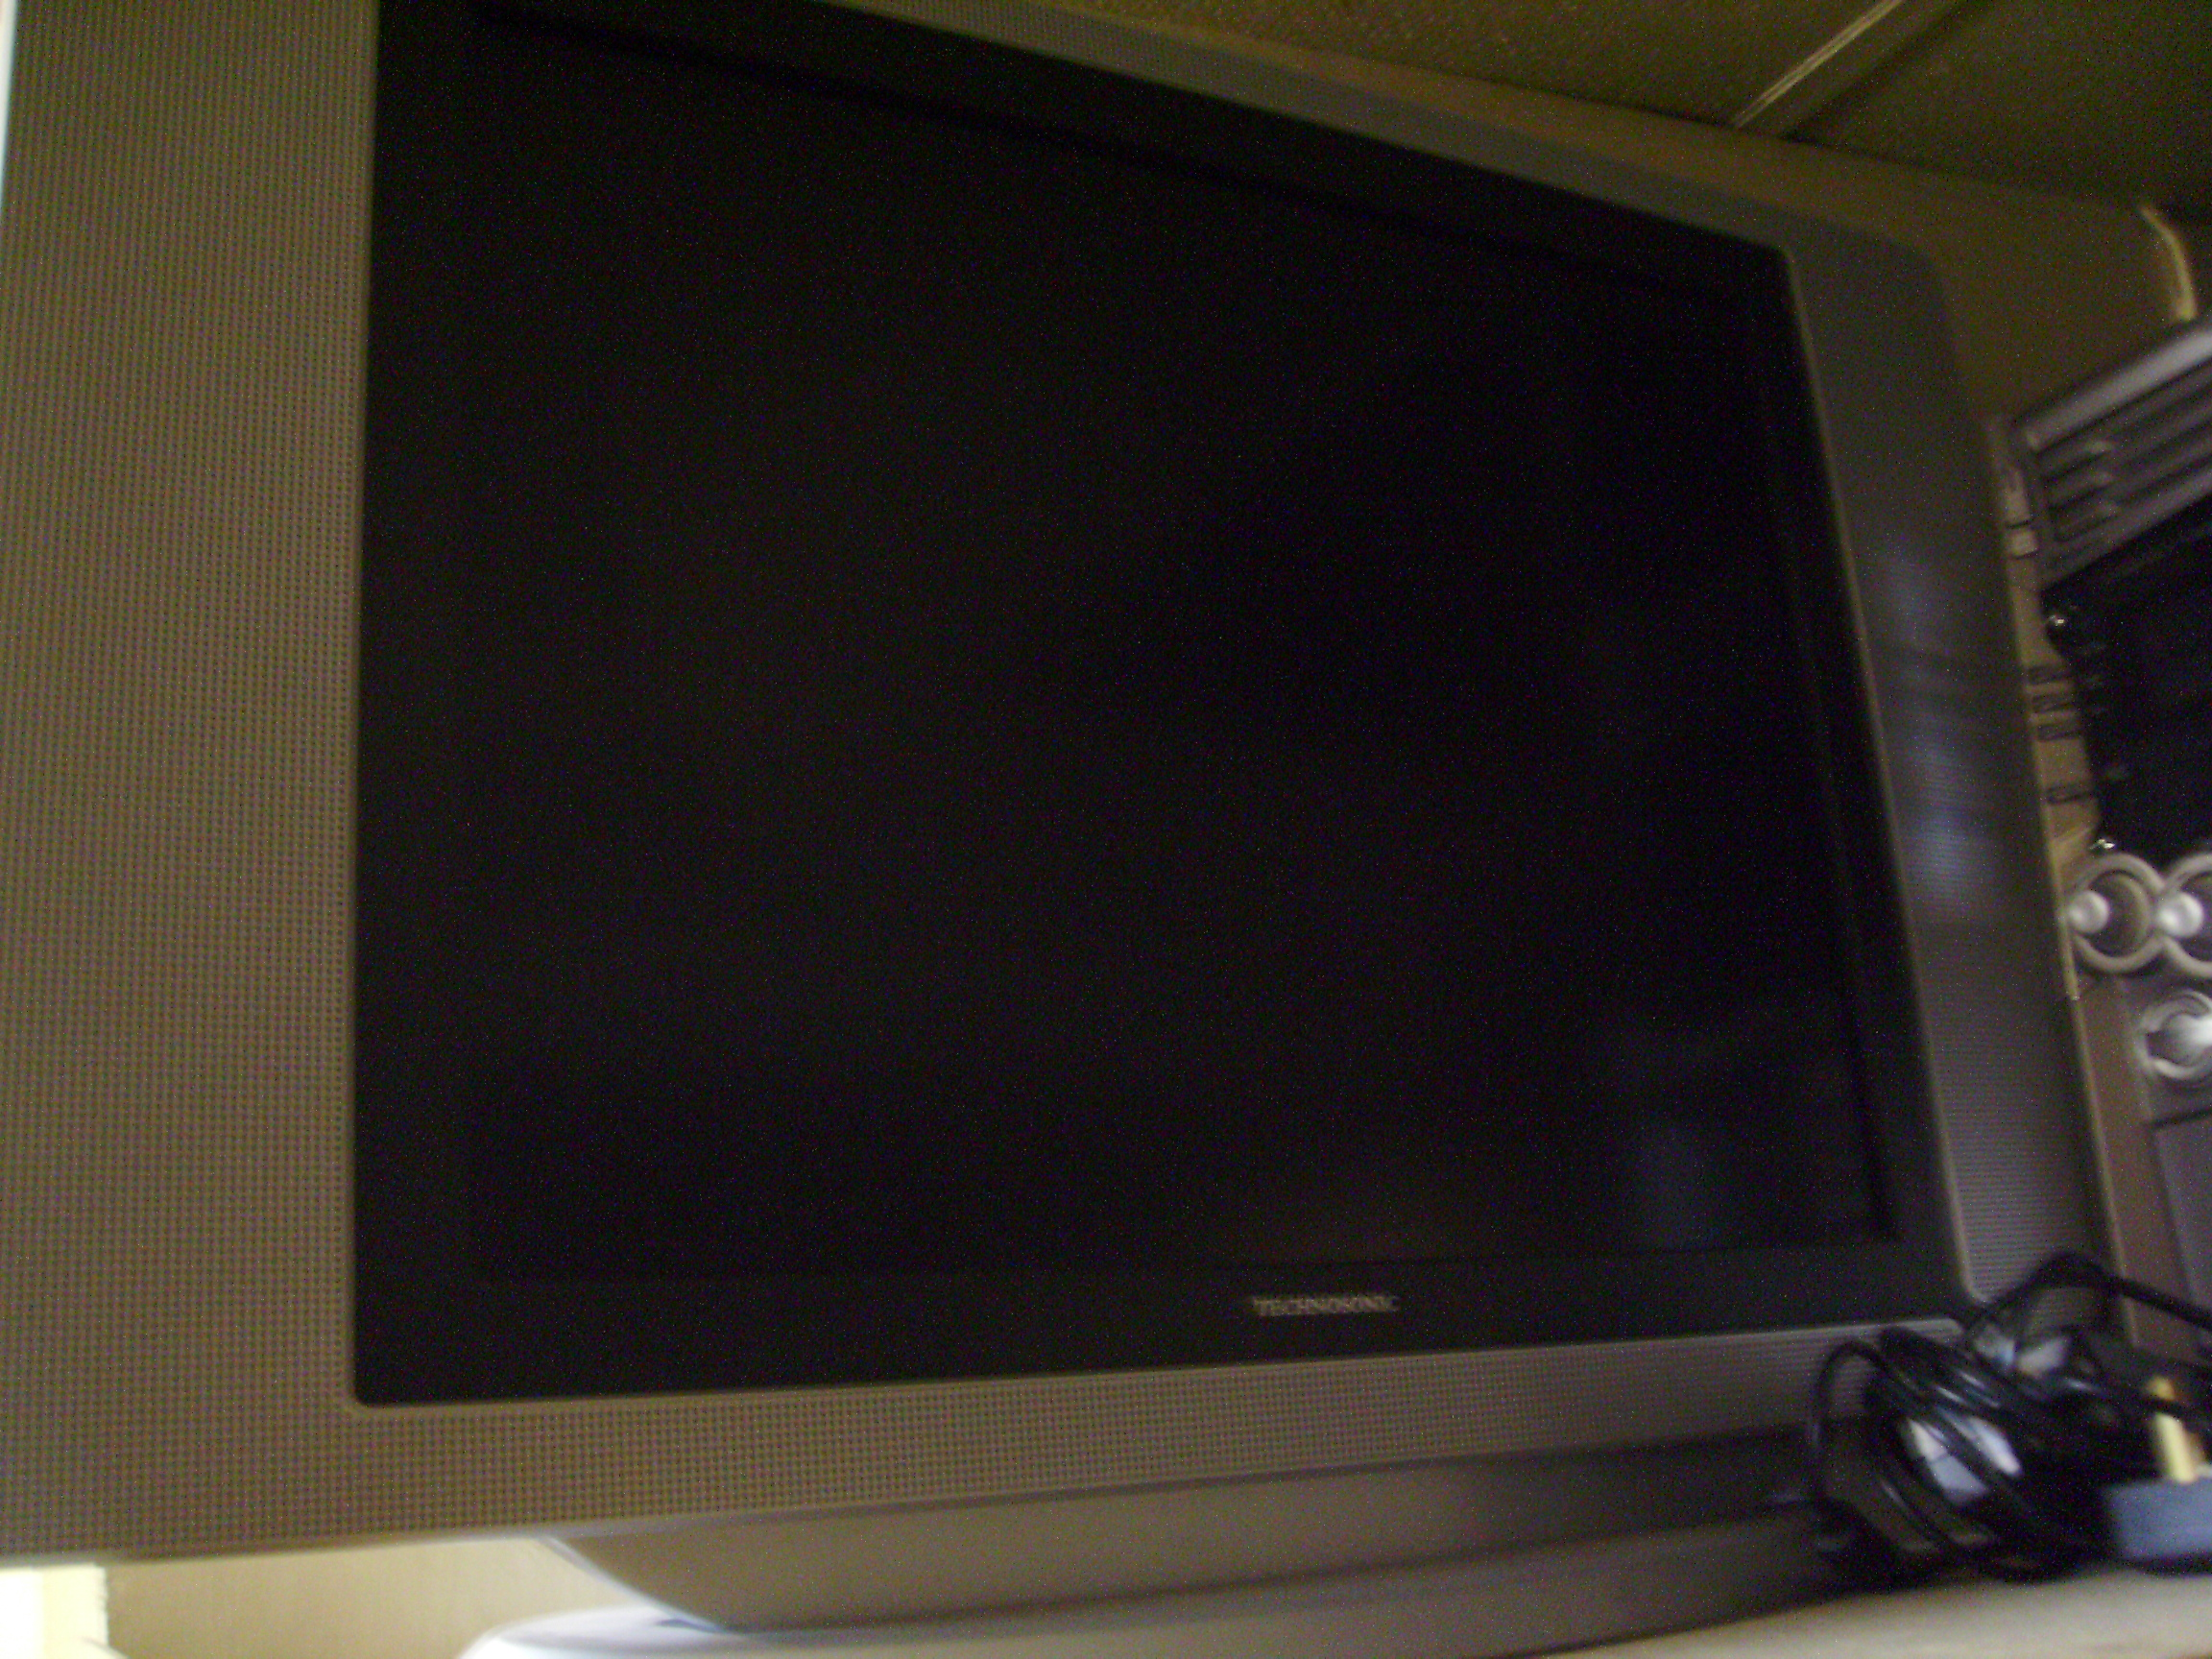 LCD / Plama TVs - Please Call for latest stock and prices